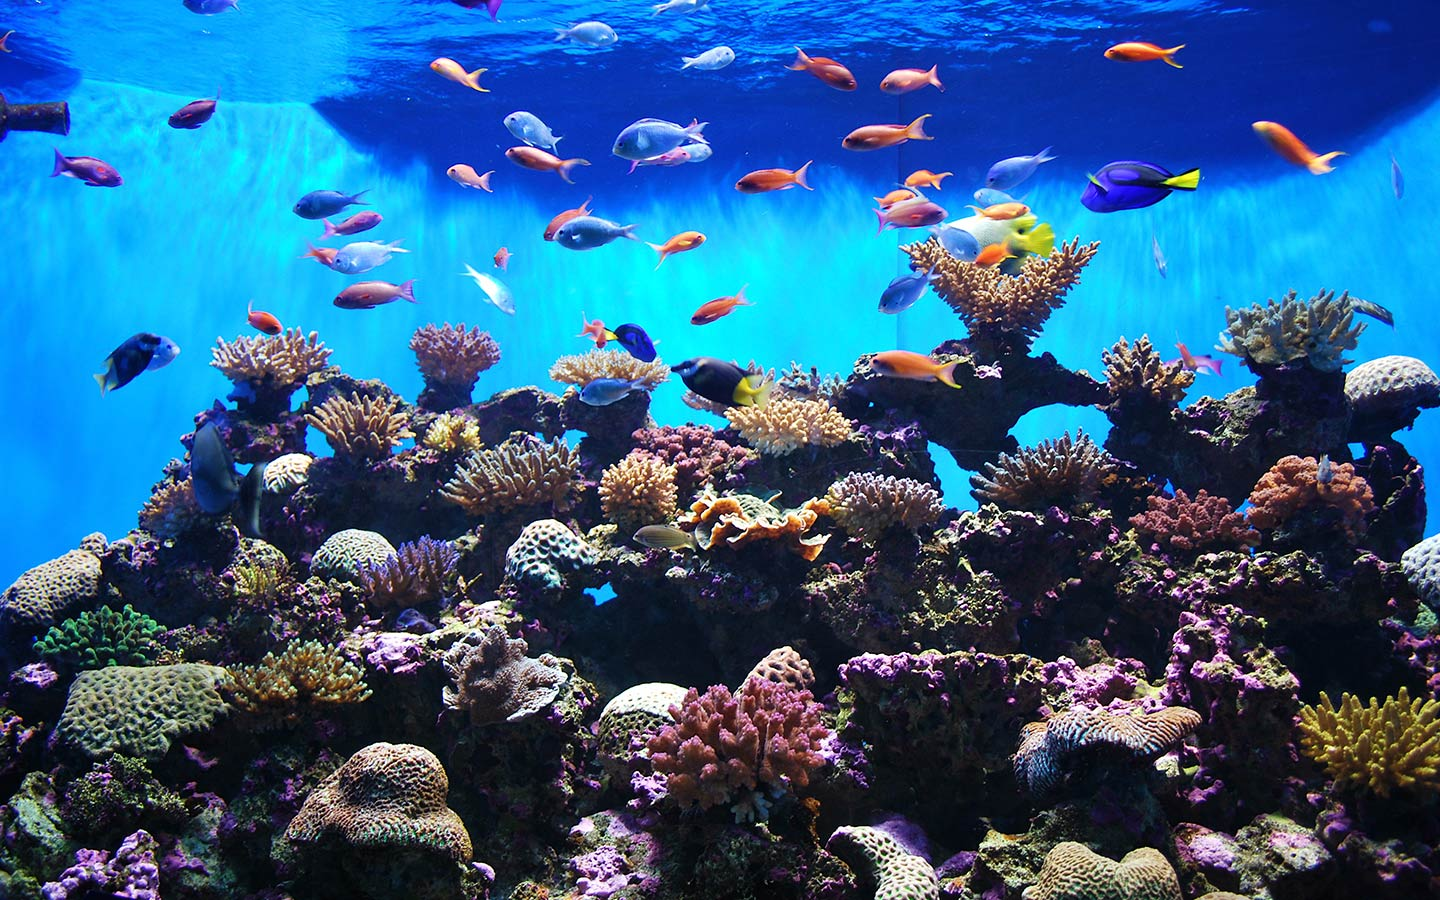 The Sharjah Aquarium is good for summers in Sharjah